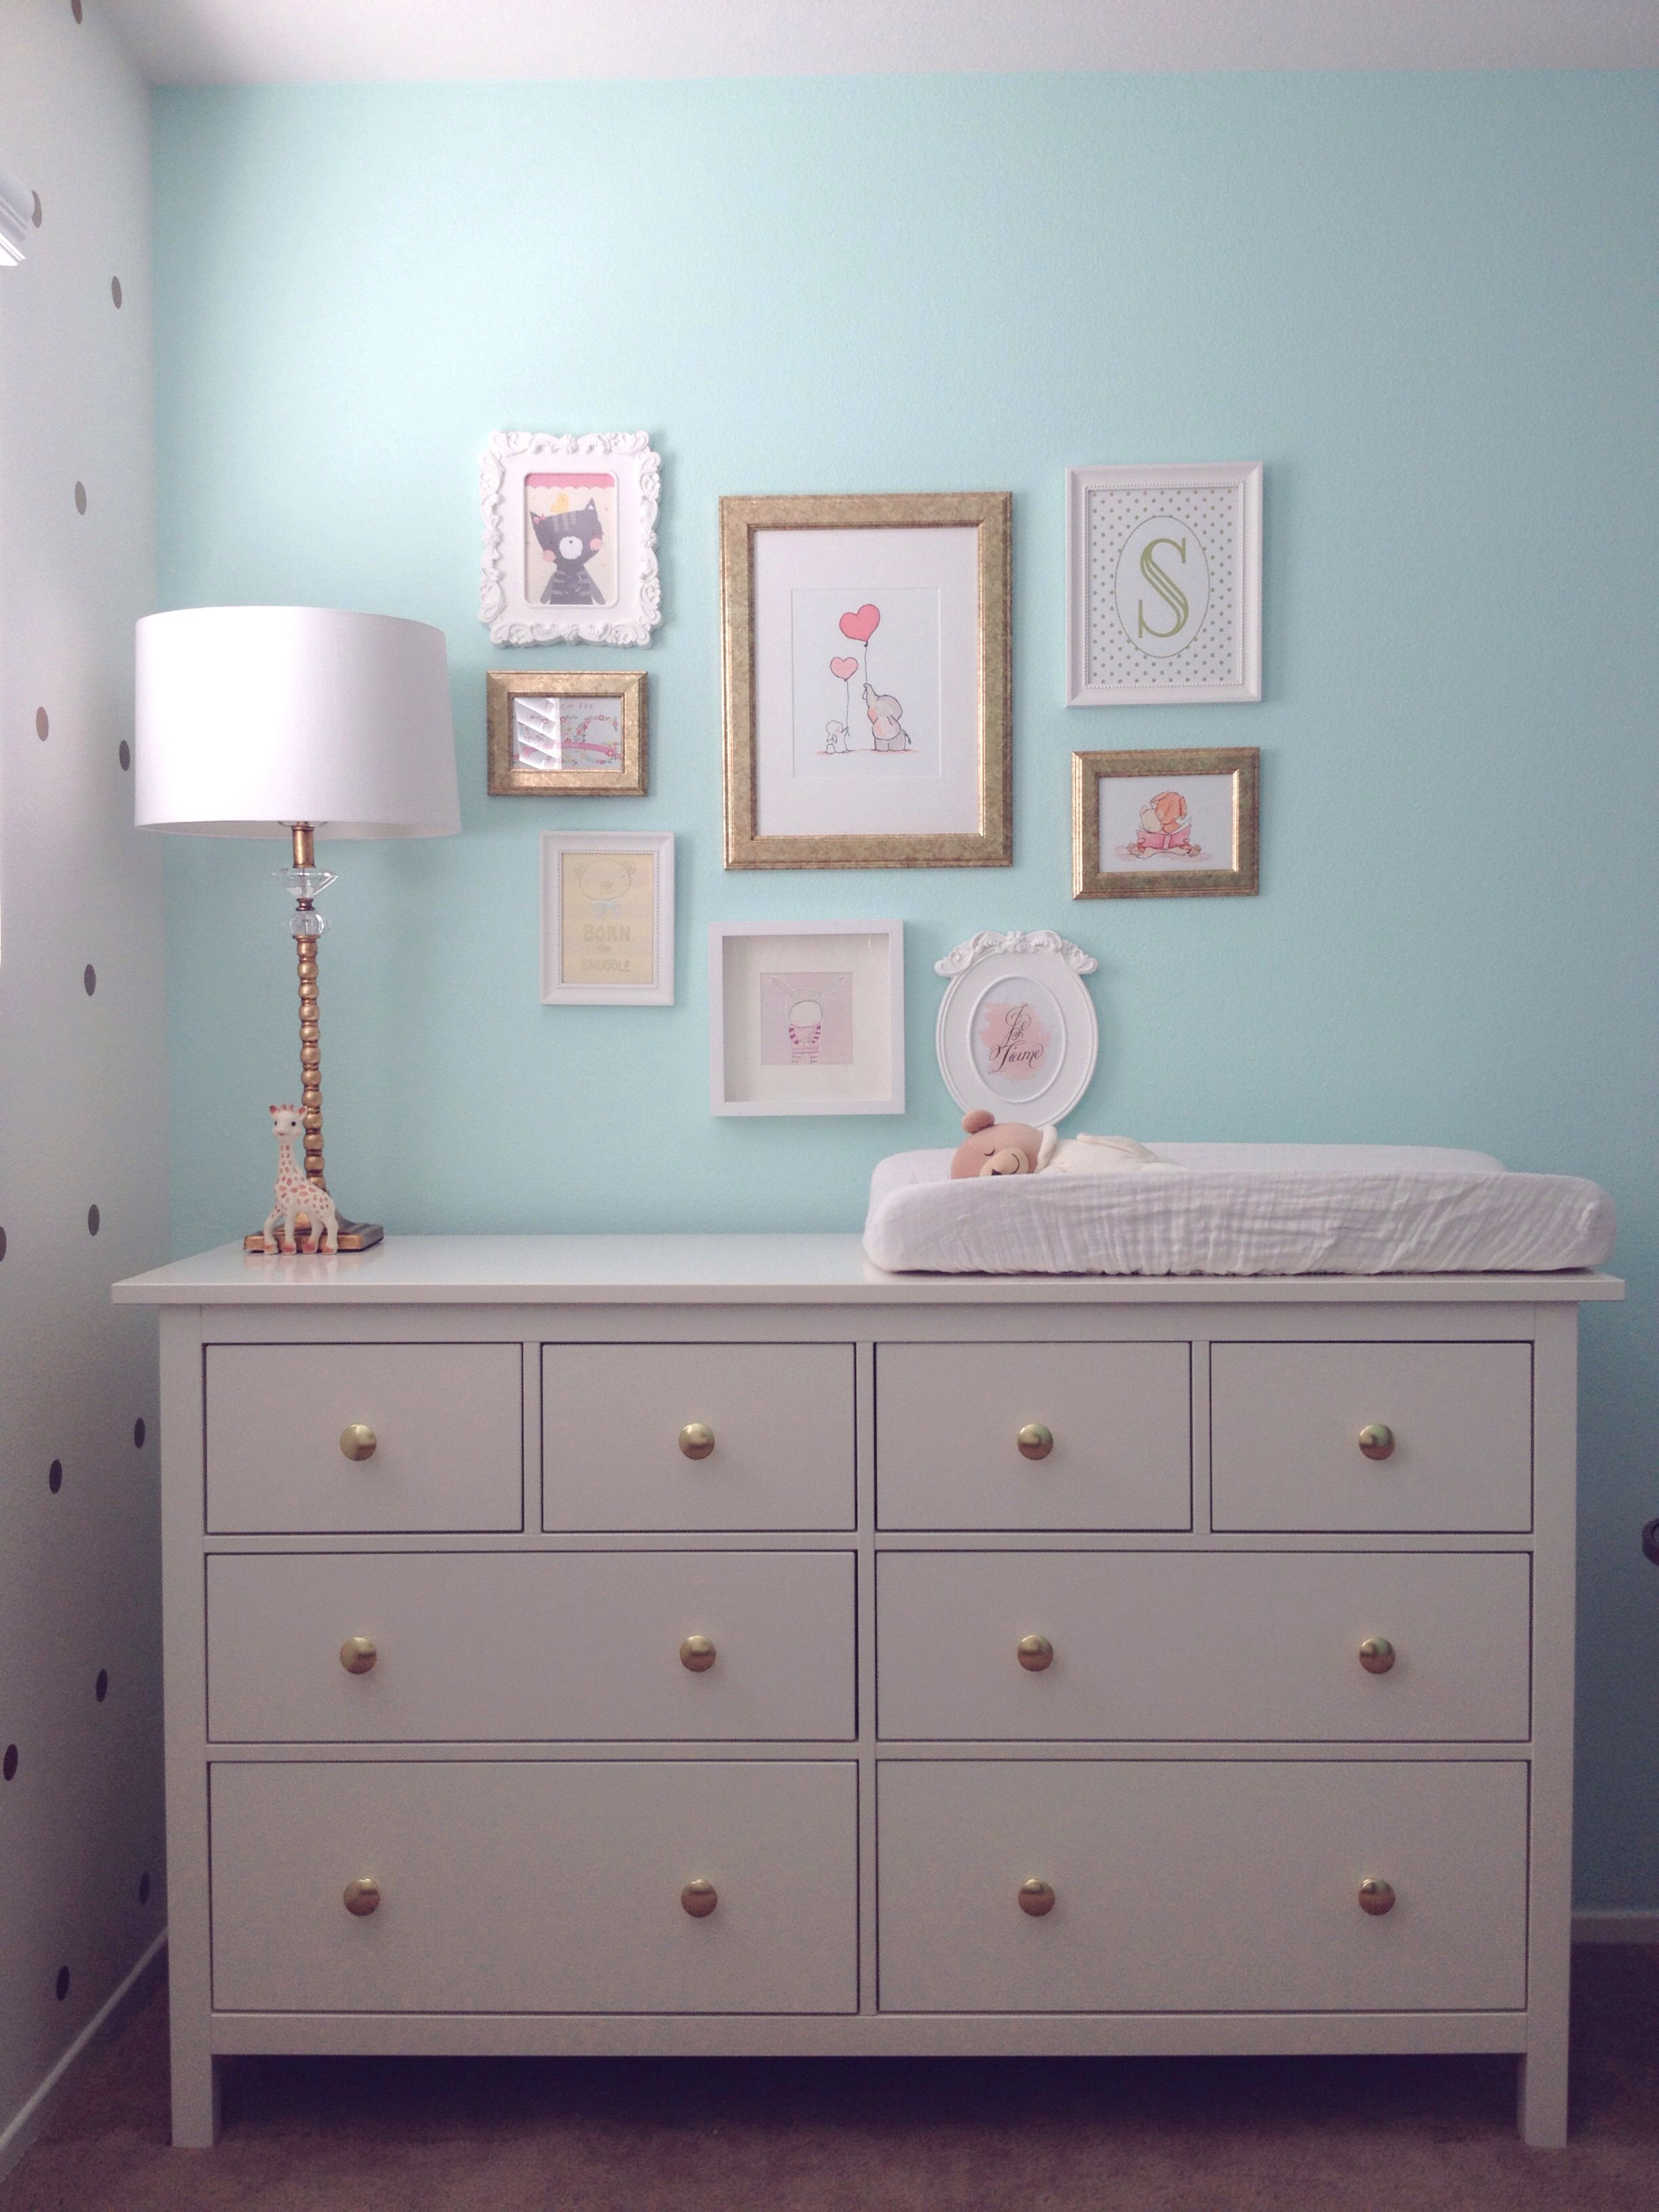 Mint Gold Nursery Frames From Ikea Hemnes Dresser From Ikea